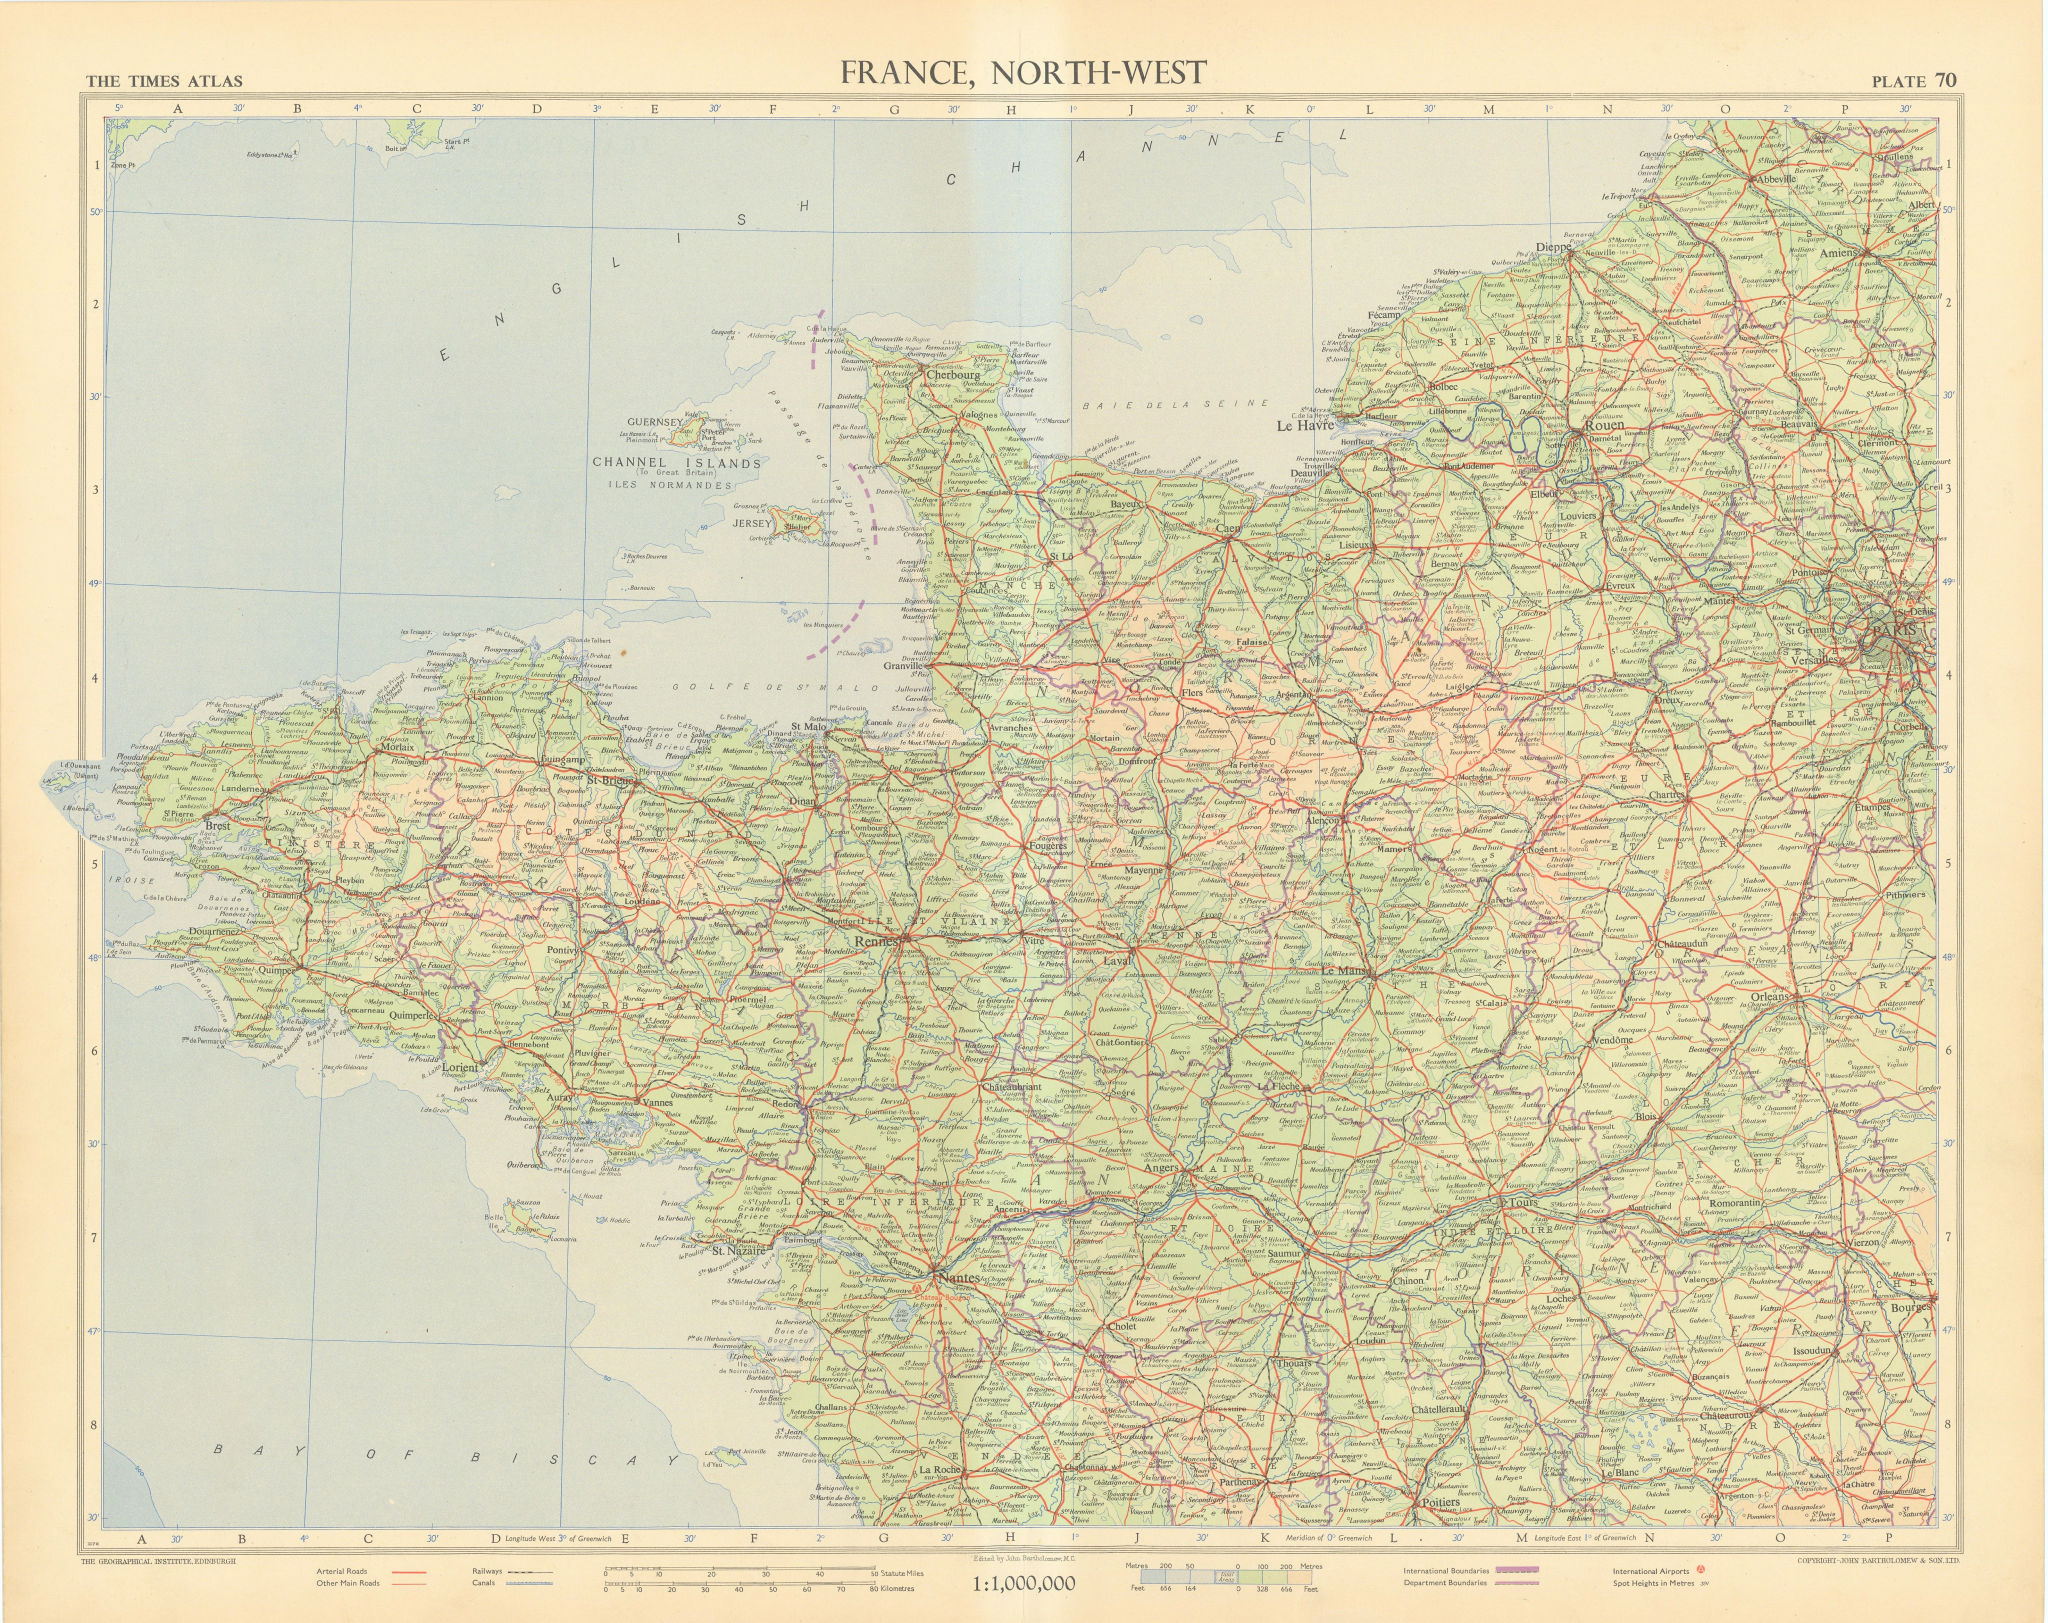 France north-west. Normandy Brittany Pays de Loire. TIMES 1955 old vintage map